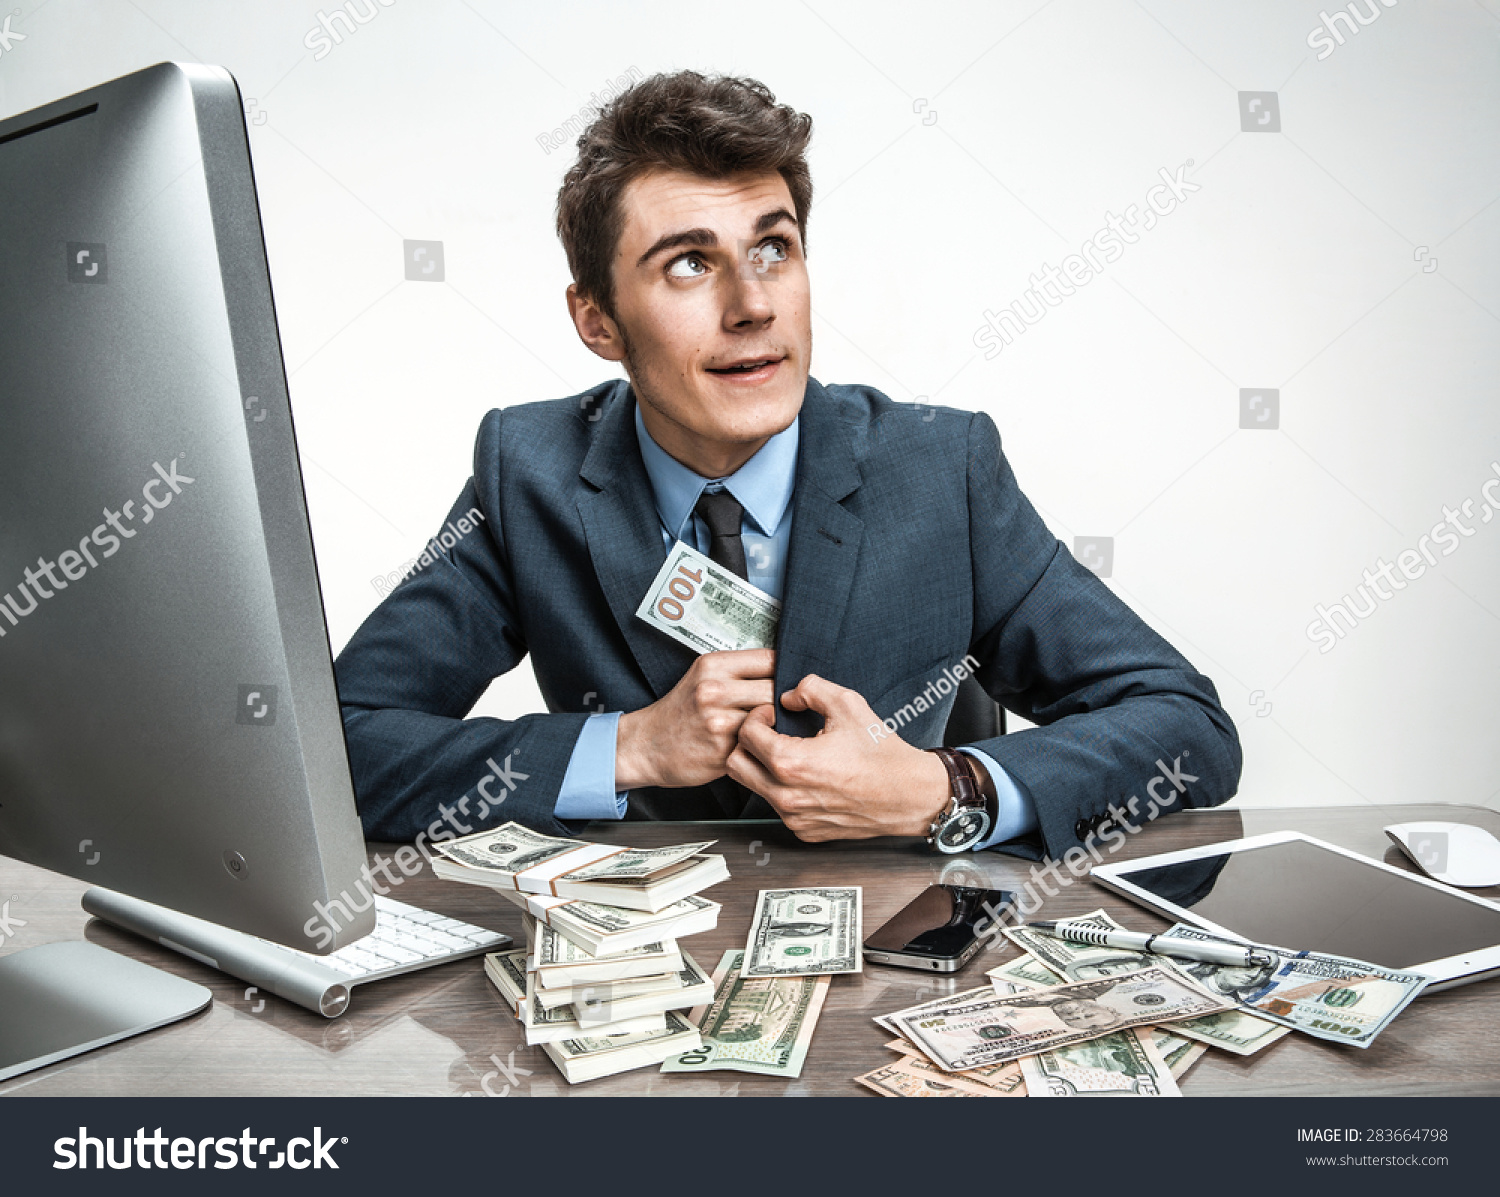 Government Official Stealing Money Taxpayers Stock Photo (Edit Now)  283664798